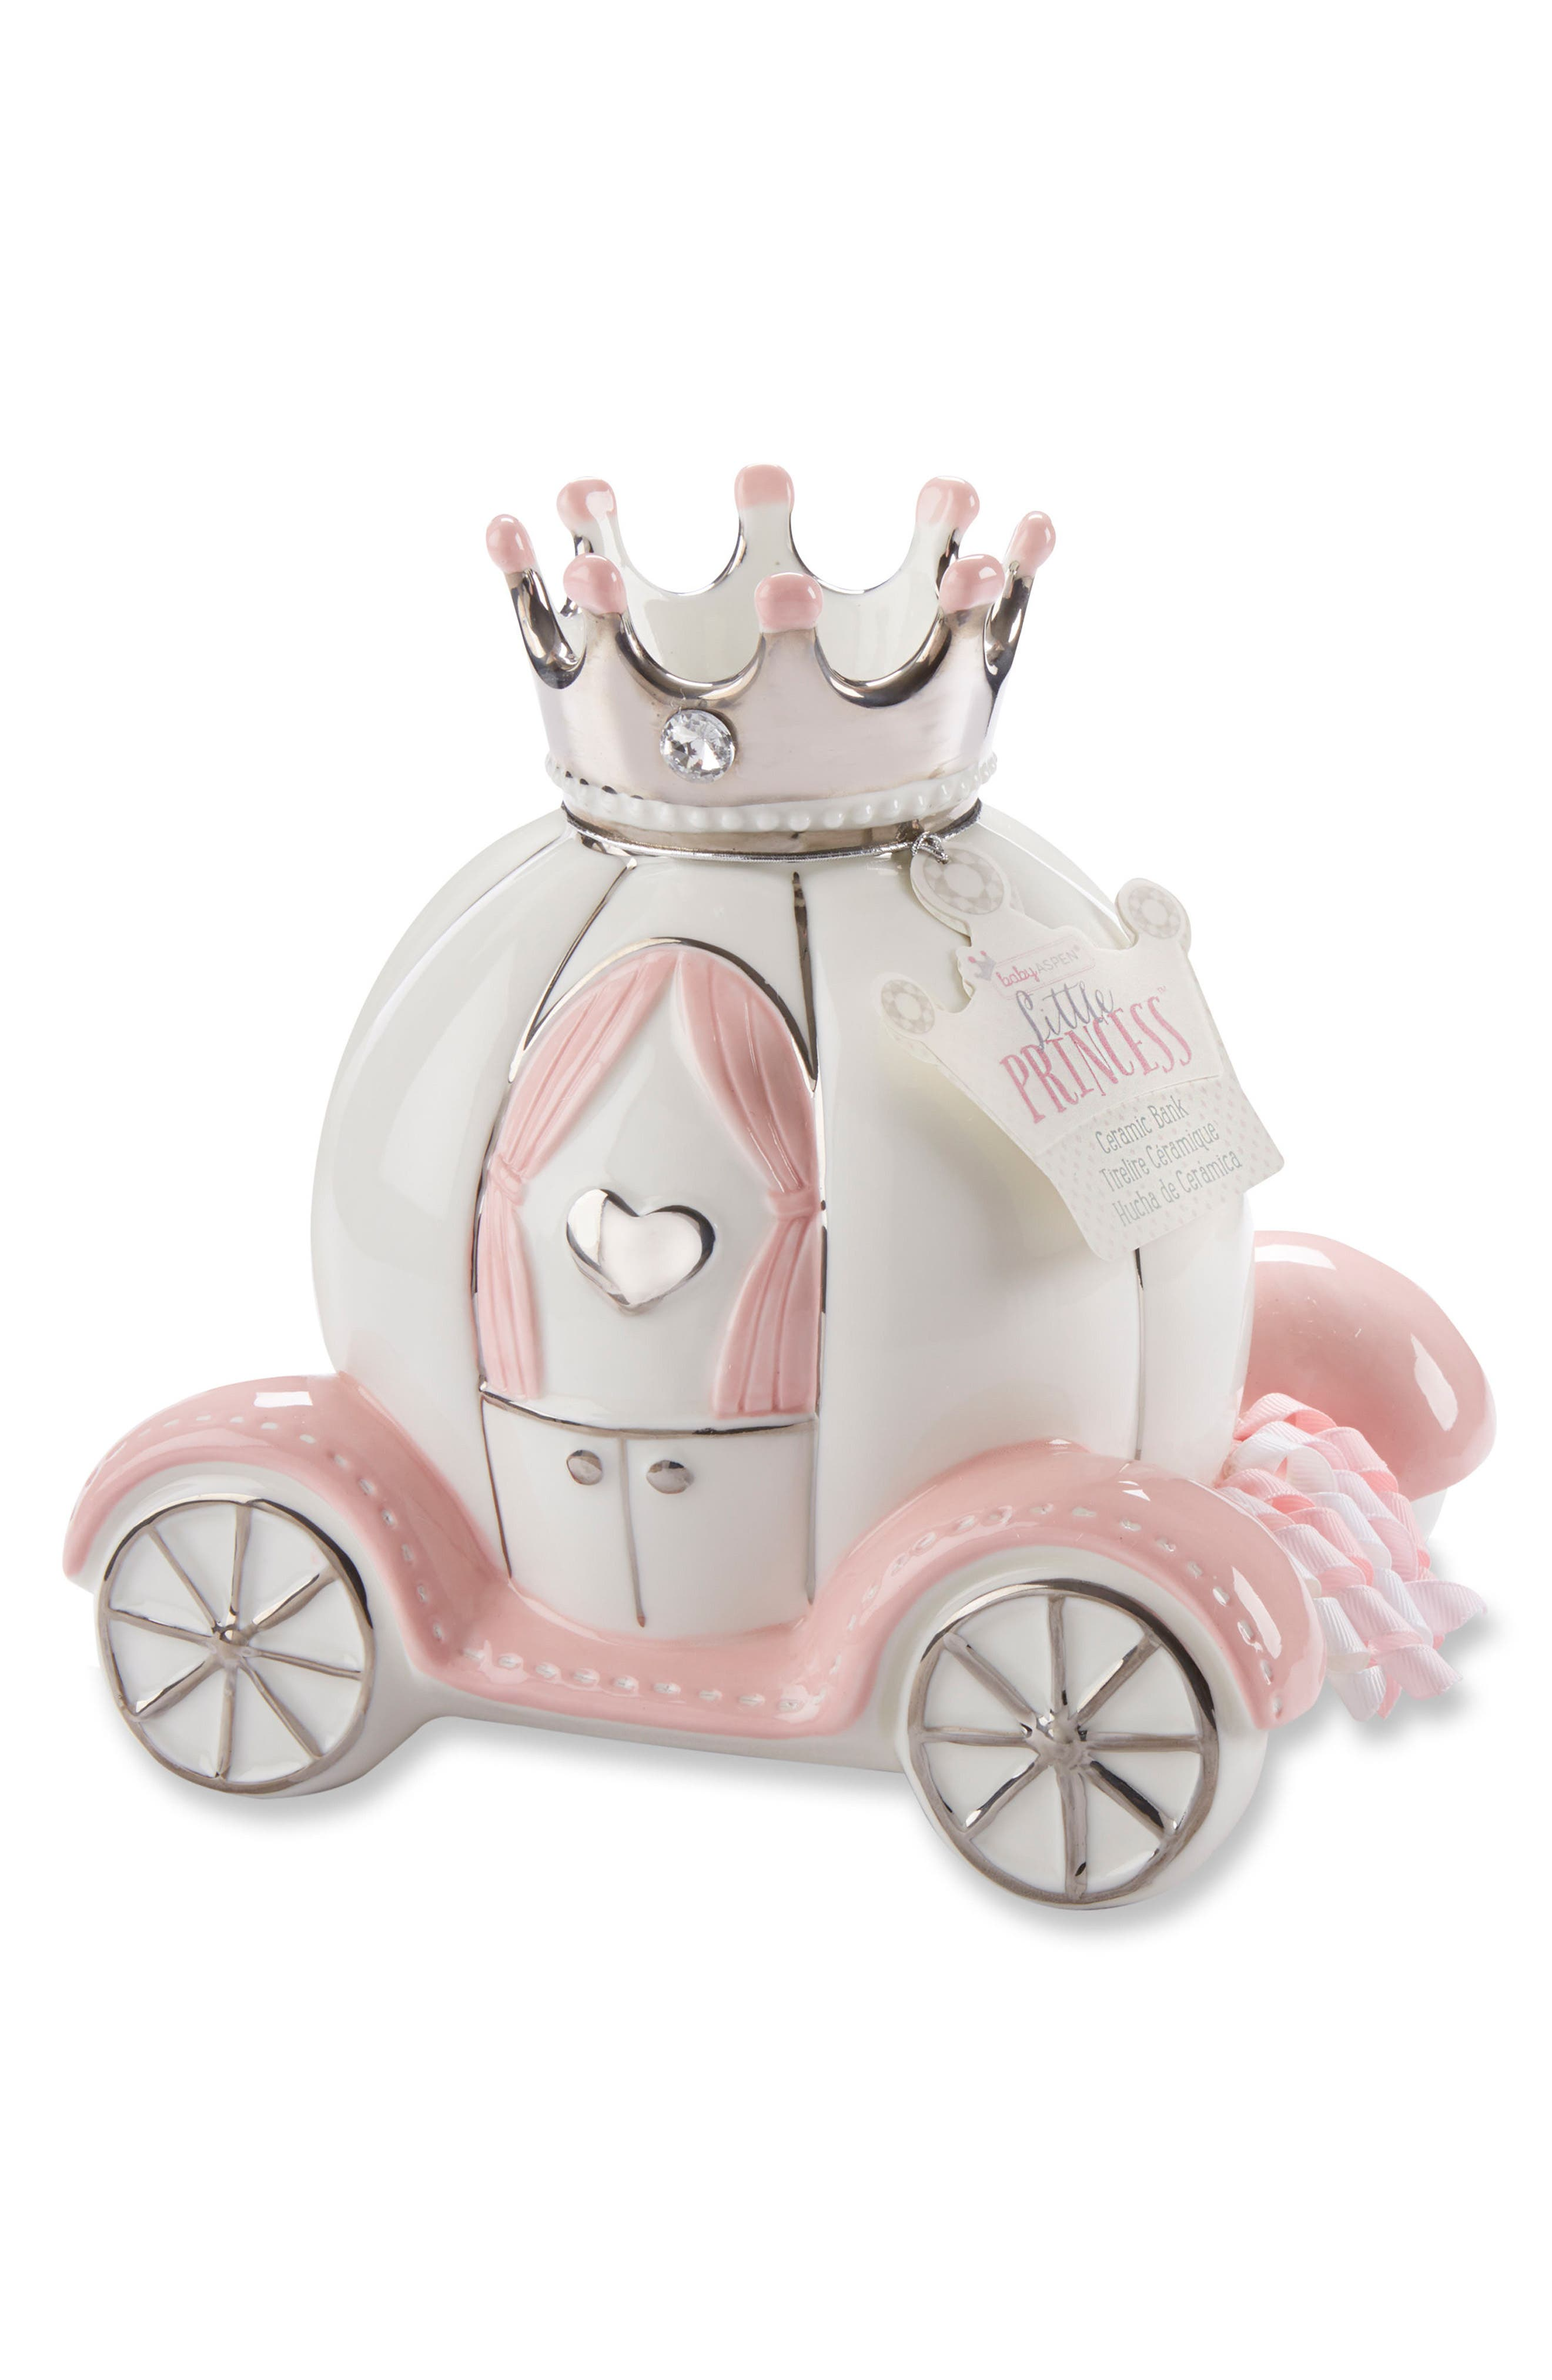 Little Princess Ceramic Carriage Bank,                         Main,                         color, Carriage